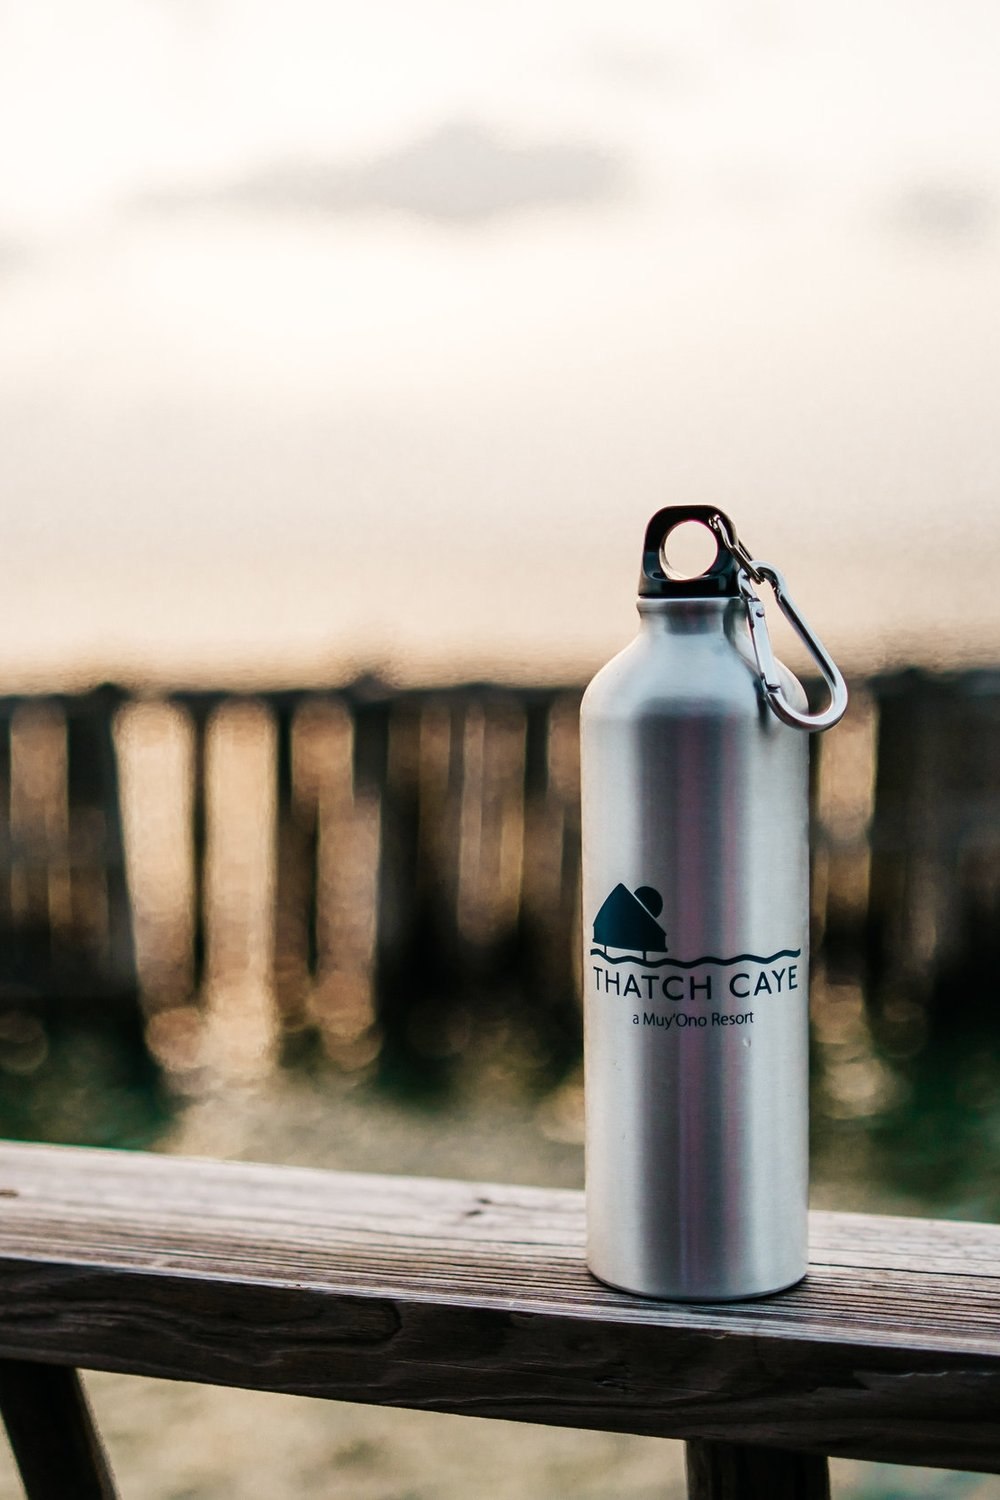 WASTE - Muy'Ono is decreasing its carbon footprint by phasing out Styrofoam and plastic and introducing bio-degradable or reusable solutions. Guests are given reusable water bottles to use during and after their stay.